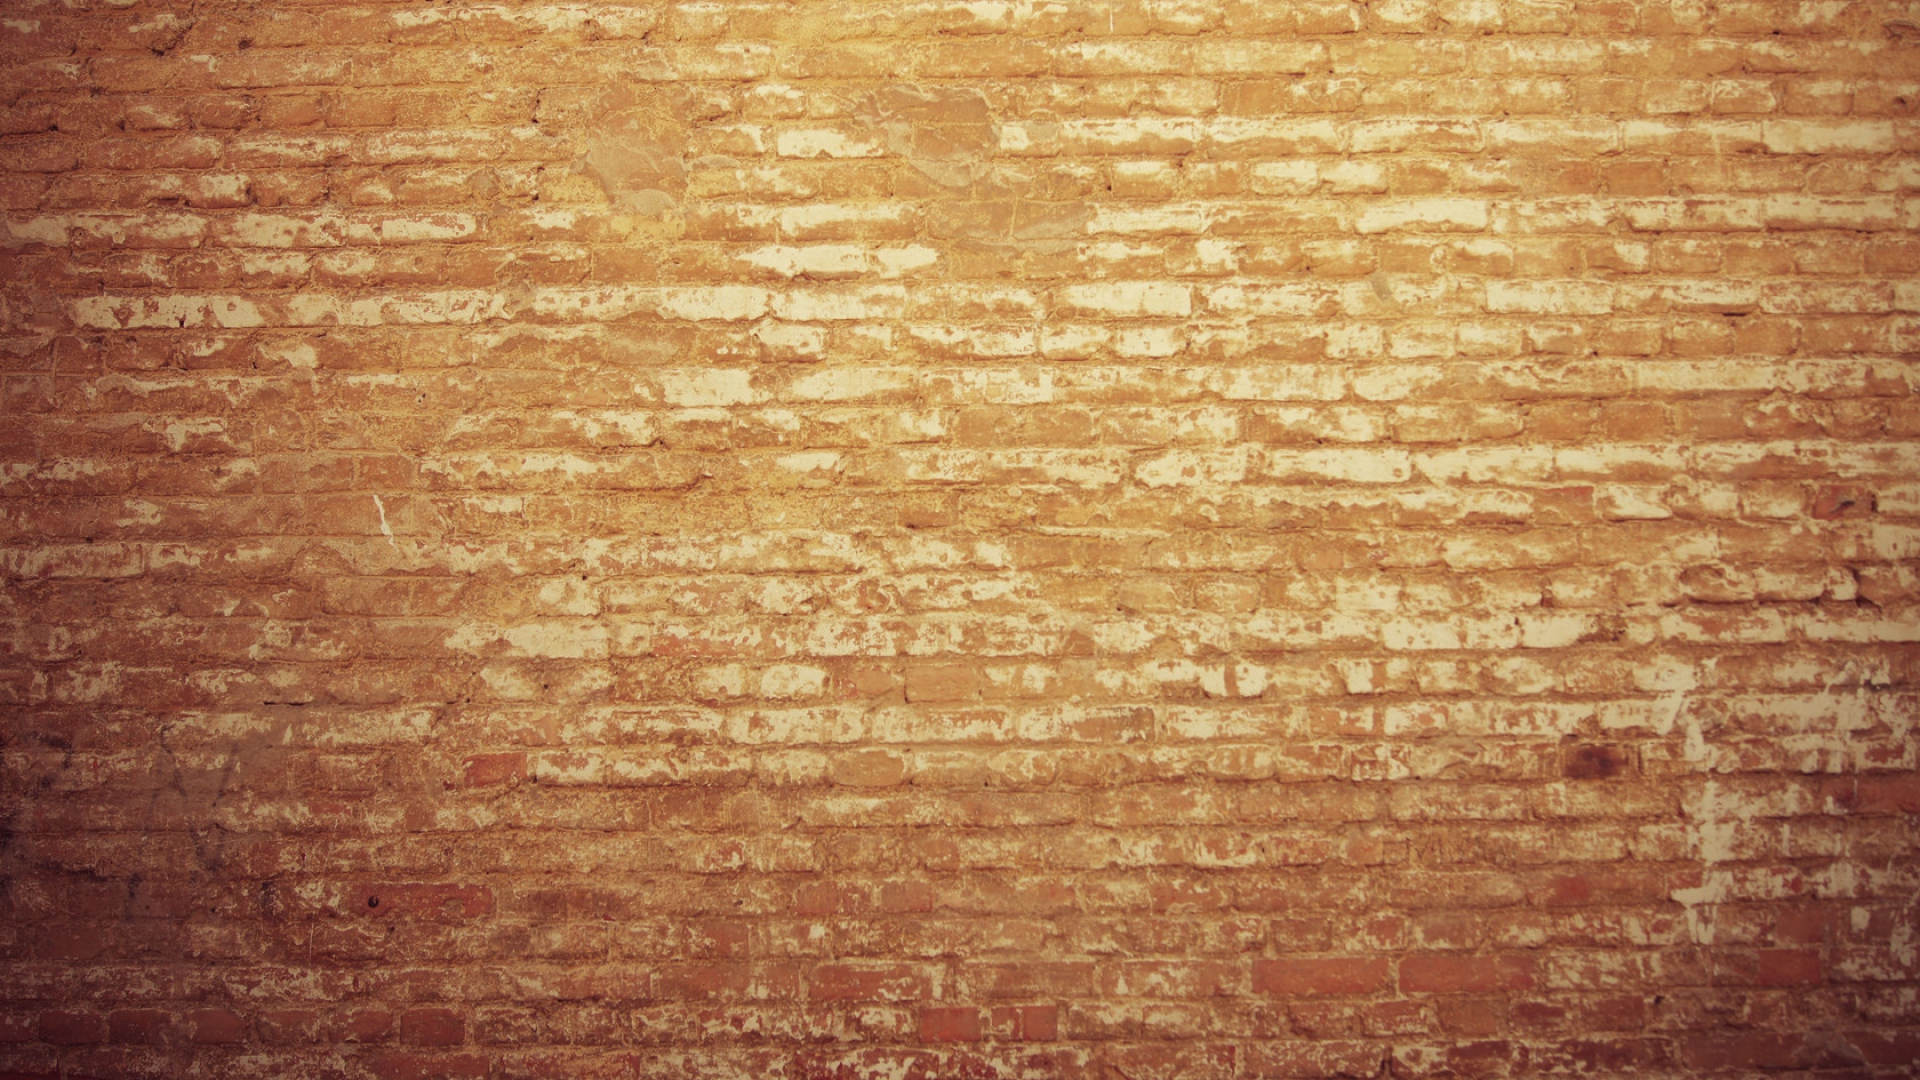 40 hd brick wallpapers backgrounds for free download for Wallpaper for your wall